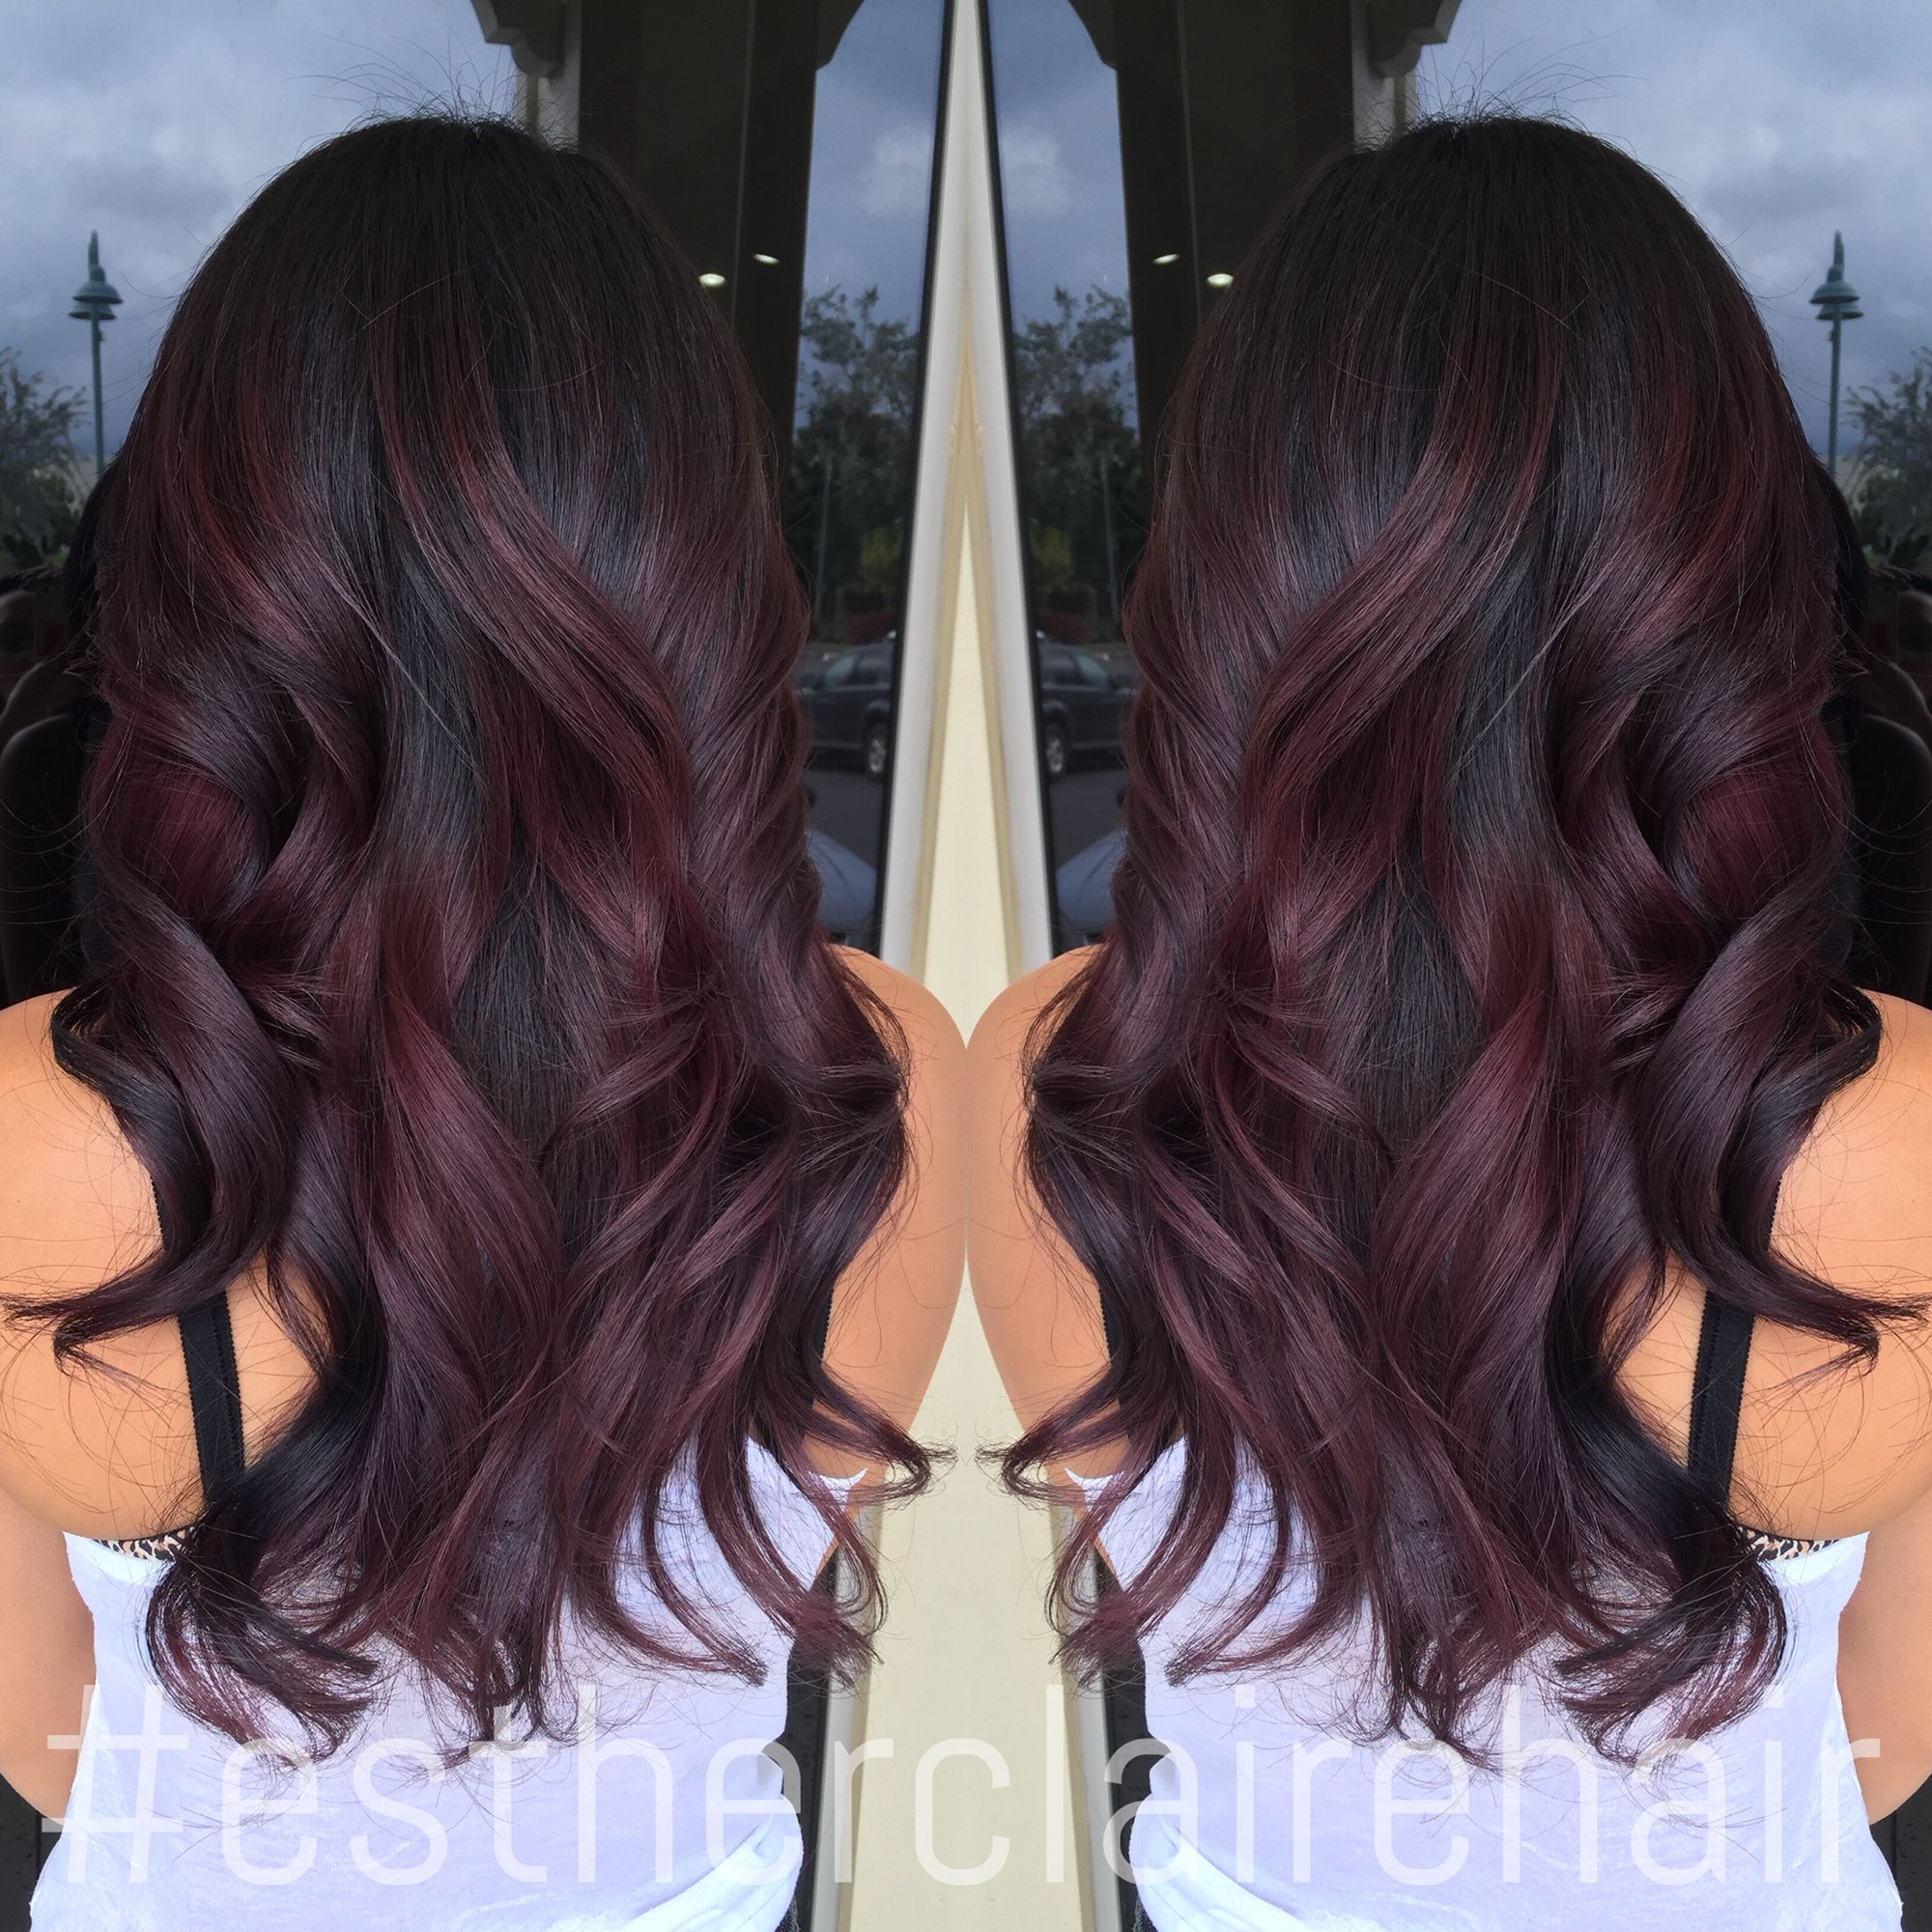 Fave Burgundy Color Balayage Need It Lower Tho And More At The Bottom Balayage Hair Hair Looks Lilac Hair